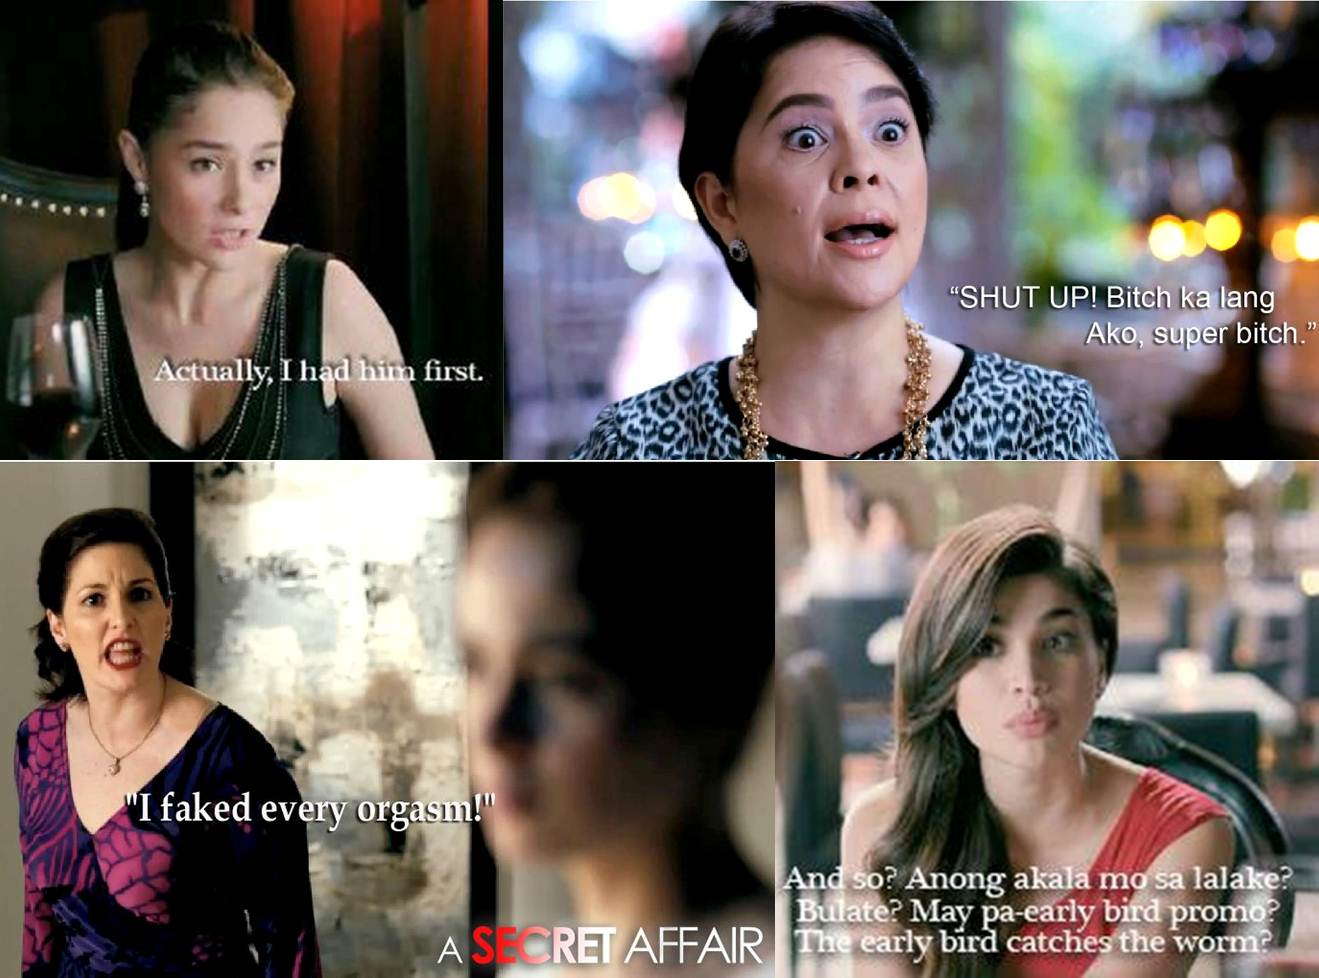 'A Secret Affair' Movie Lines and Quotes | BIDA KAPAMILYA